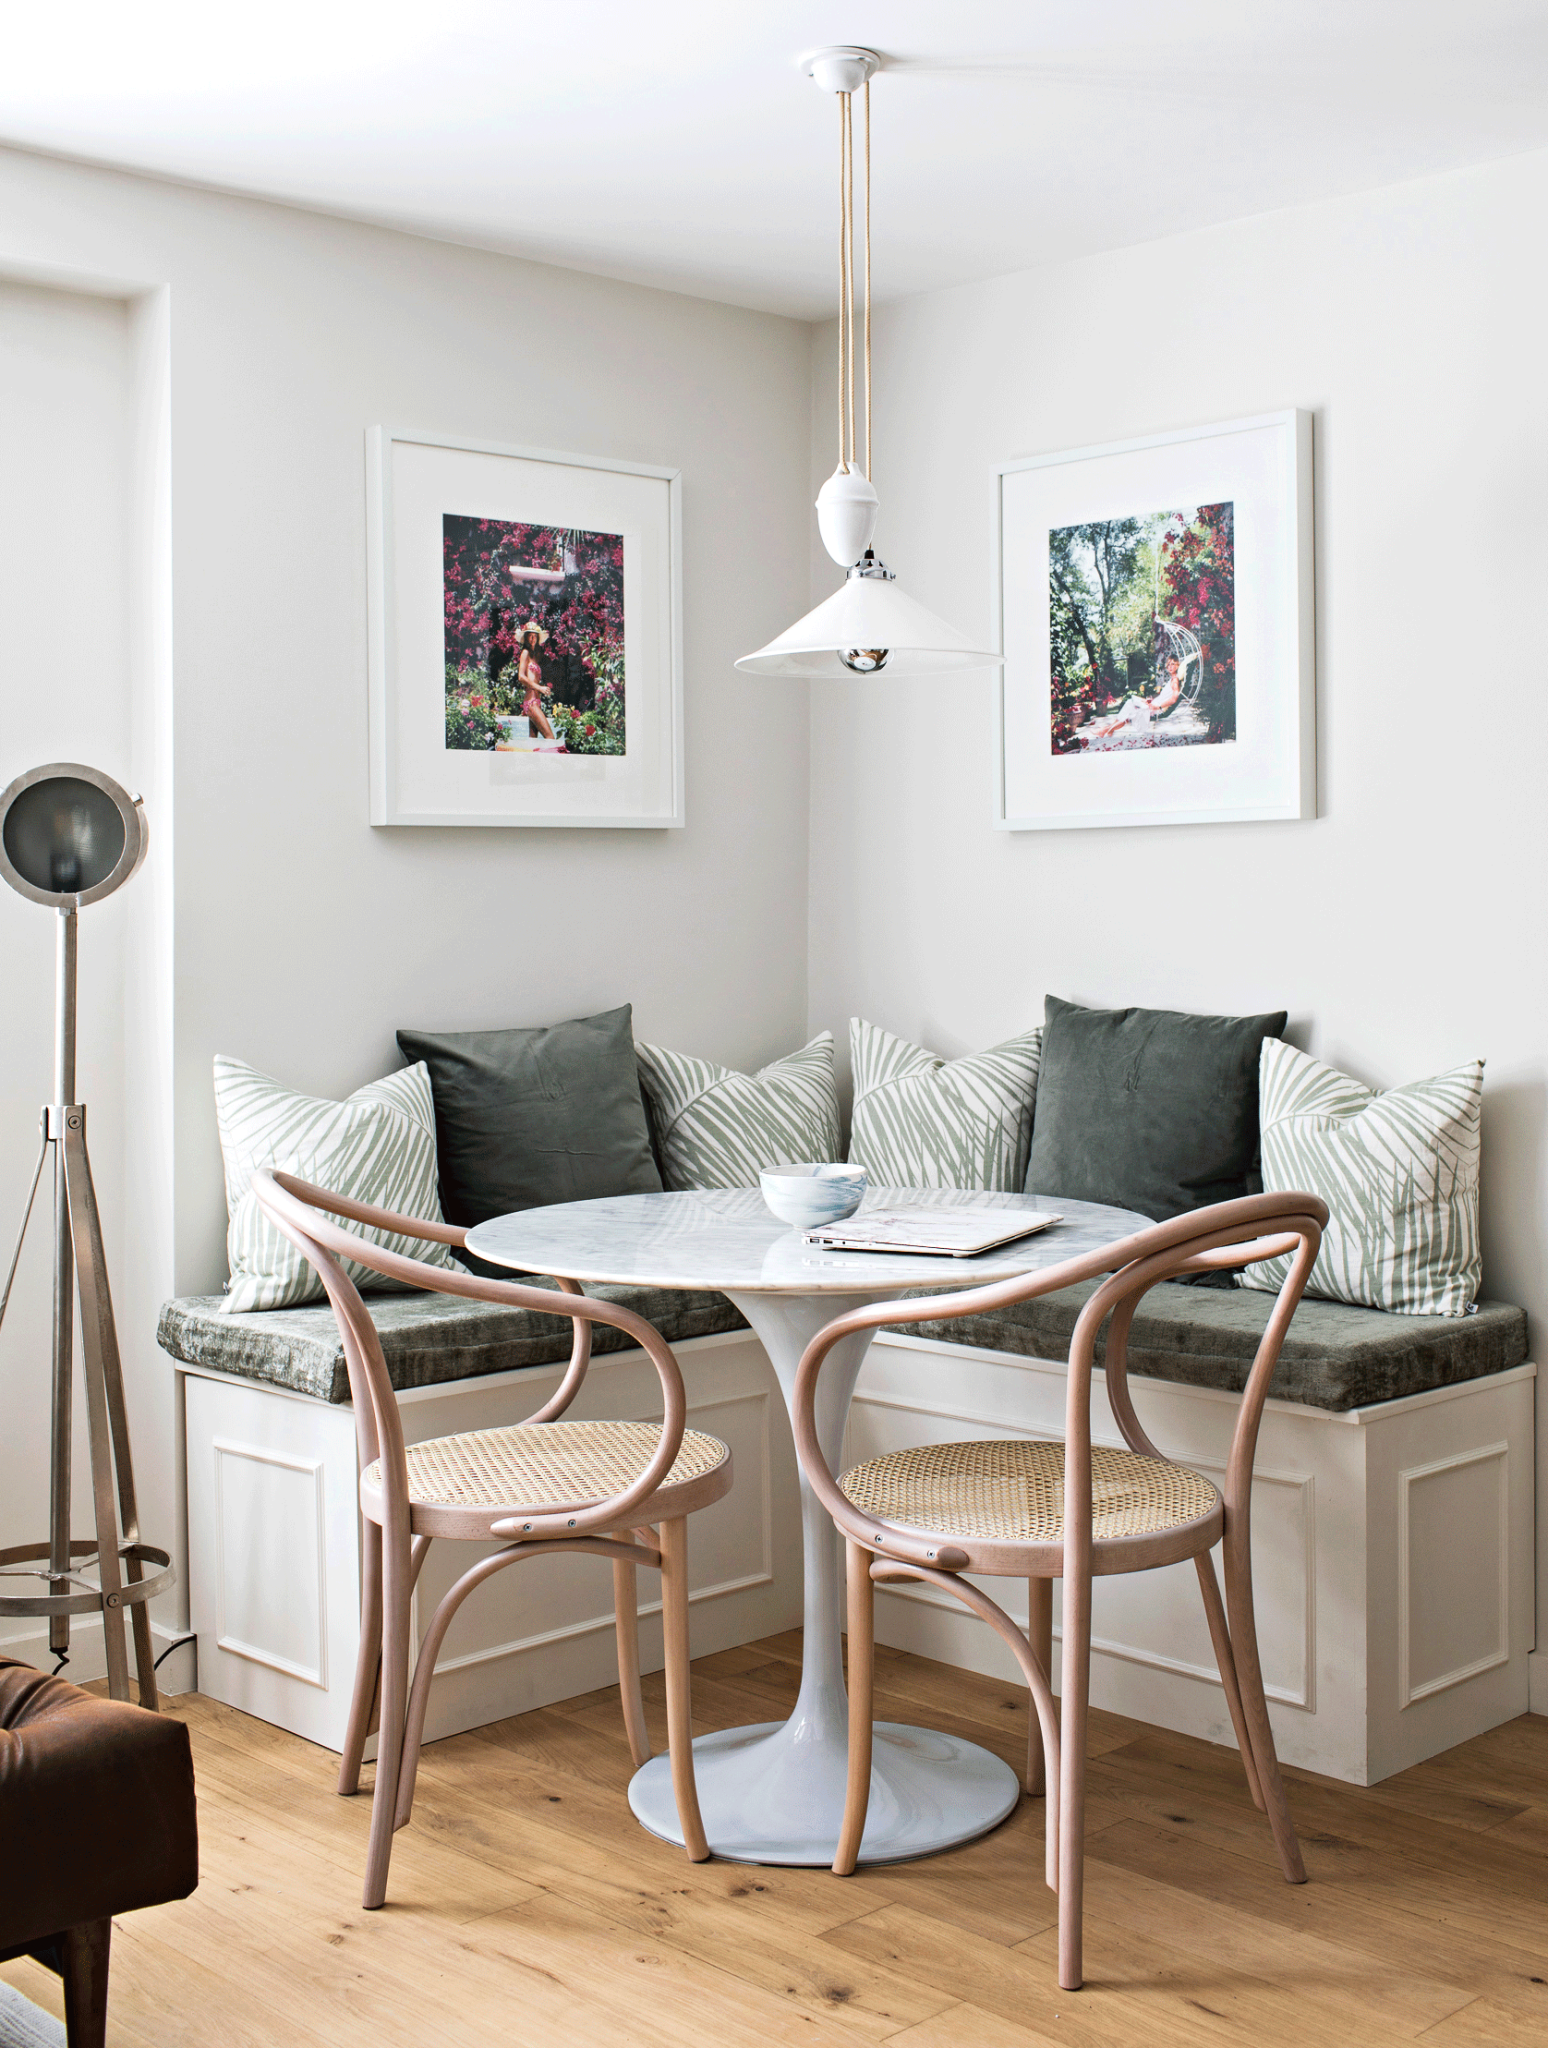 7 Big Ideas for Small Spaces